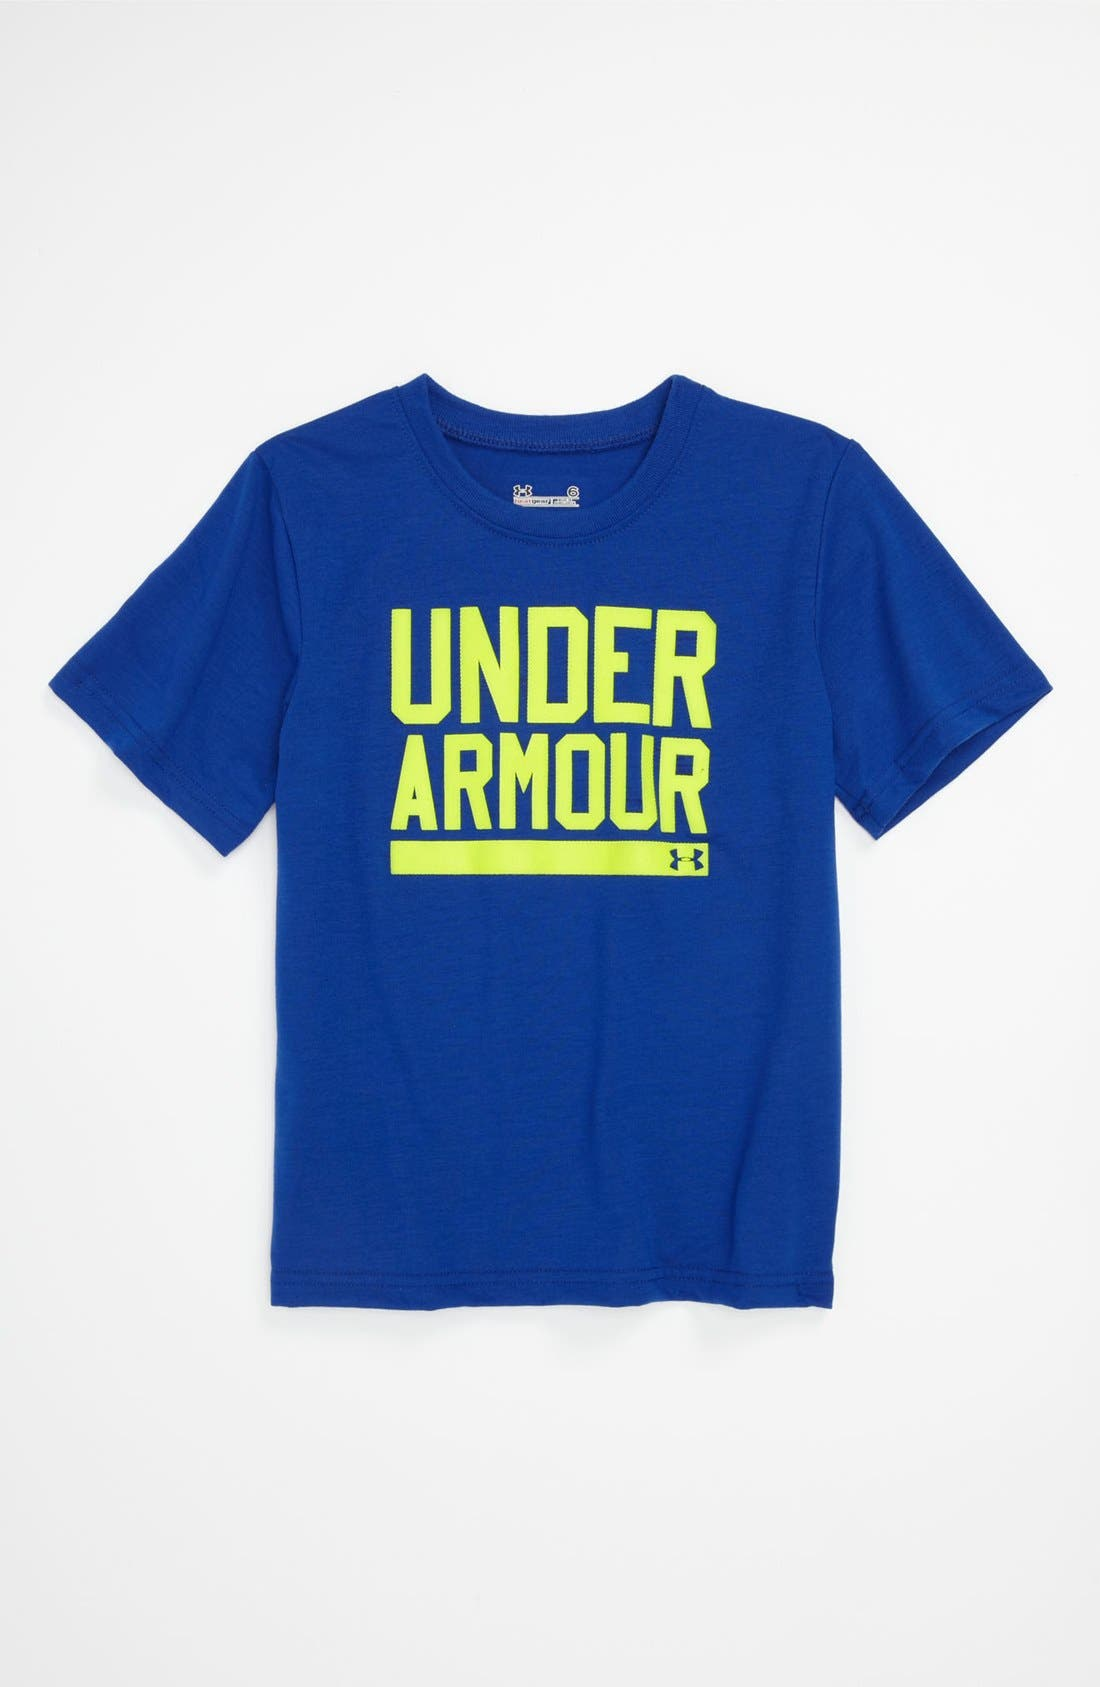 Alternate Image 1 Selected - Under Armour 'Branded' T-Shirt (Little Boys)